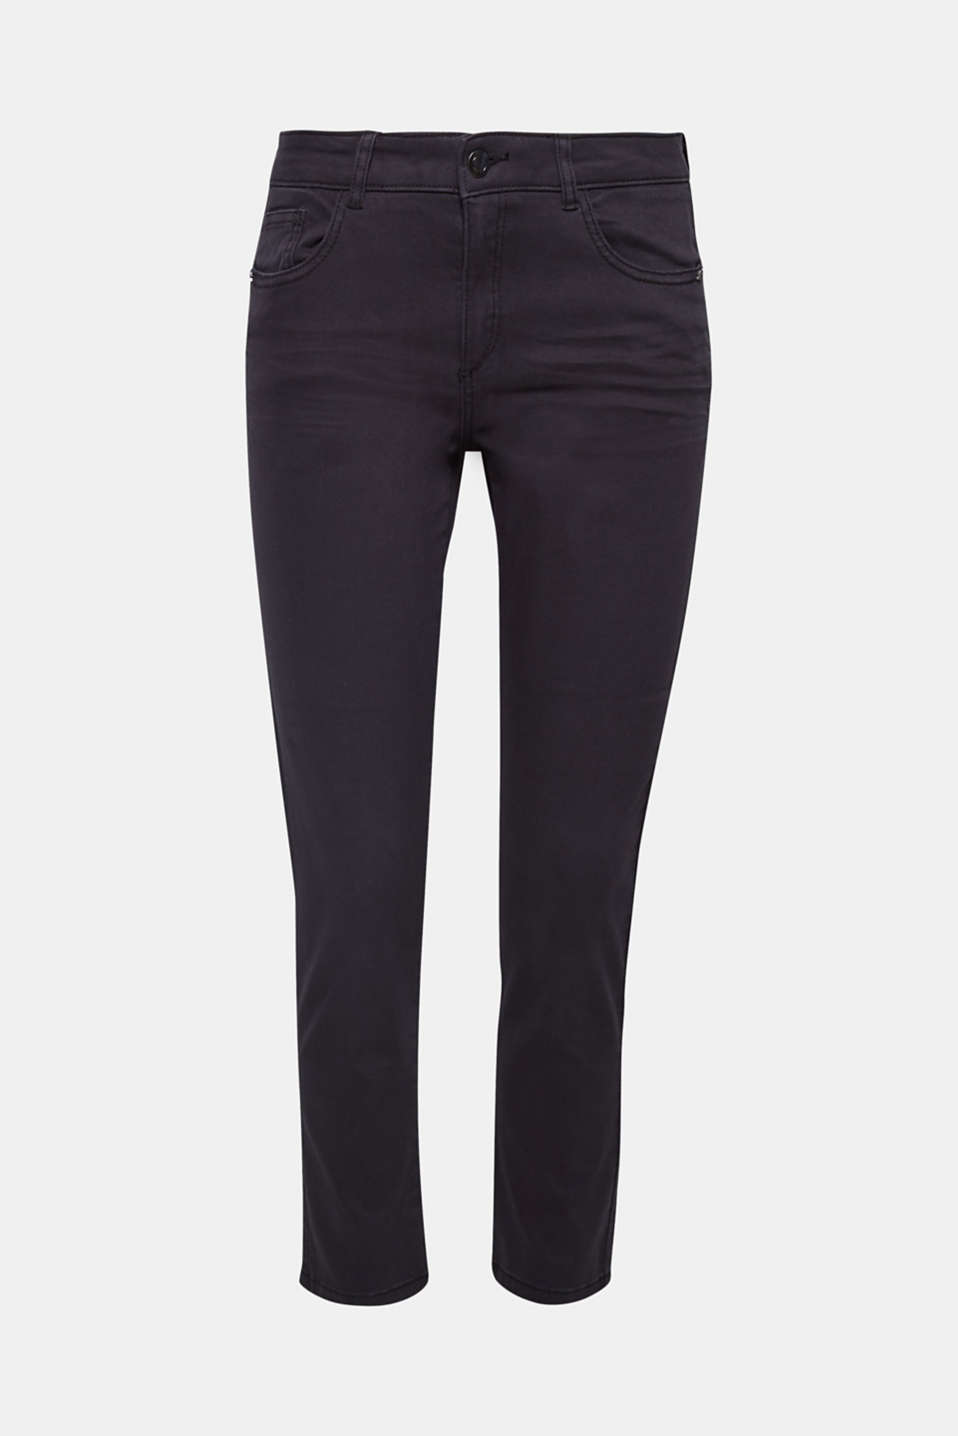 Slim fit, subtle details: these skinny trousers feature wrinkled effects and decorative studs on the front pockets!